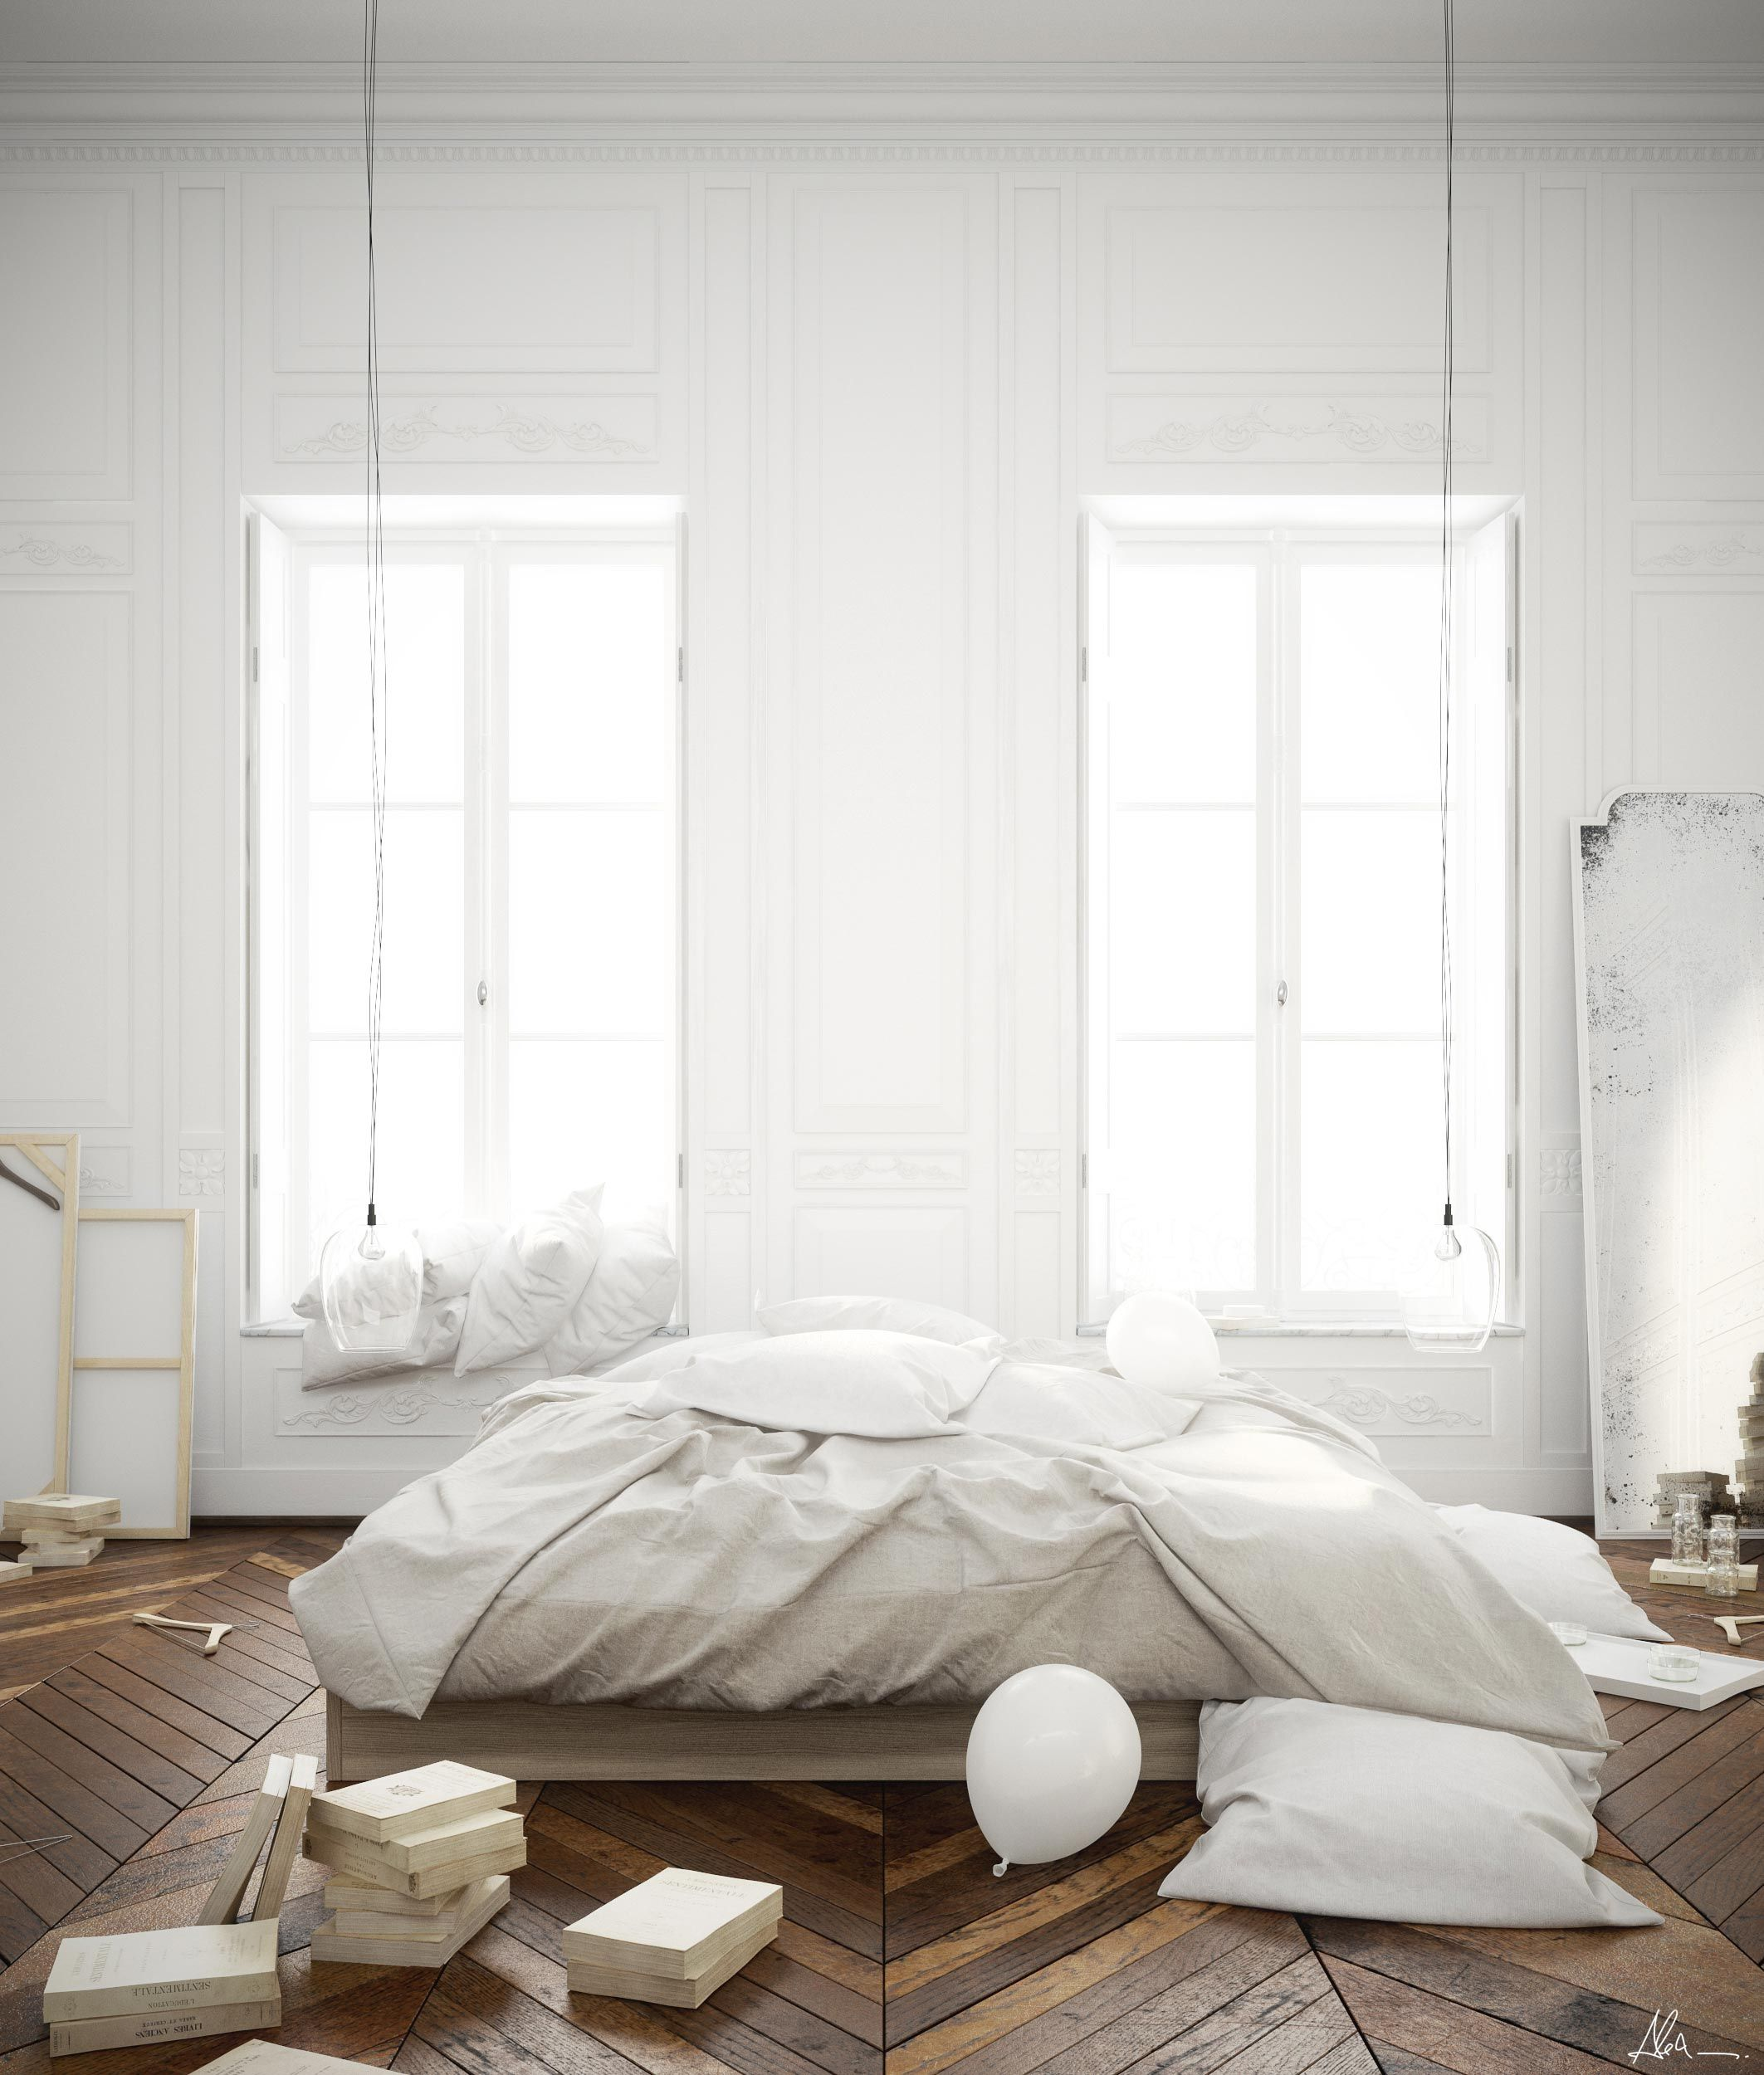 unmade bed side view. The Design Chaser: Interior Inspo White Bedroom Styling Unmade Bed Side View